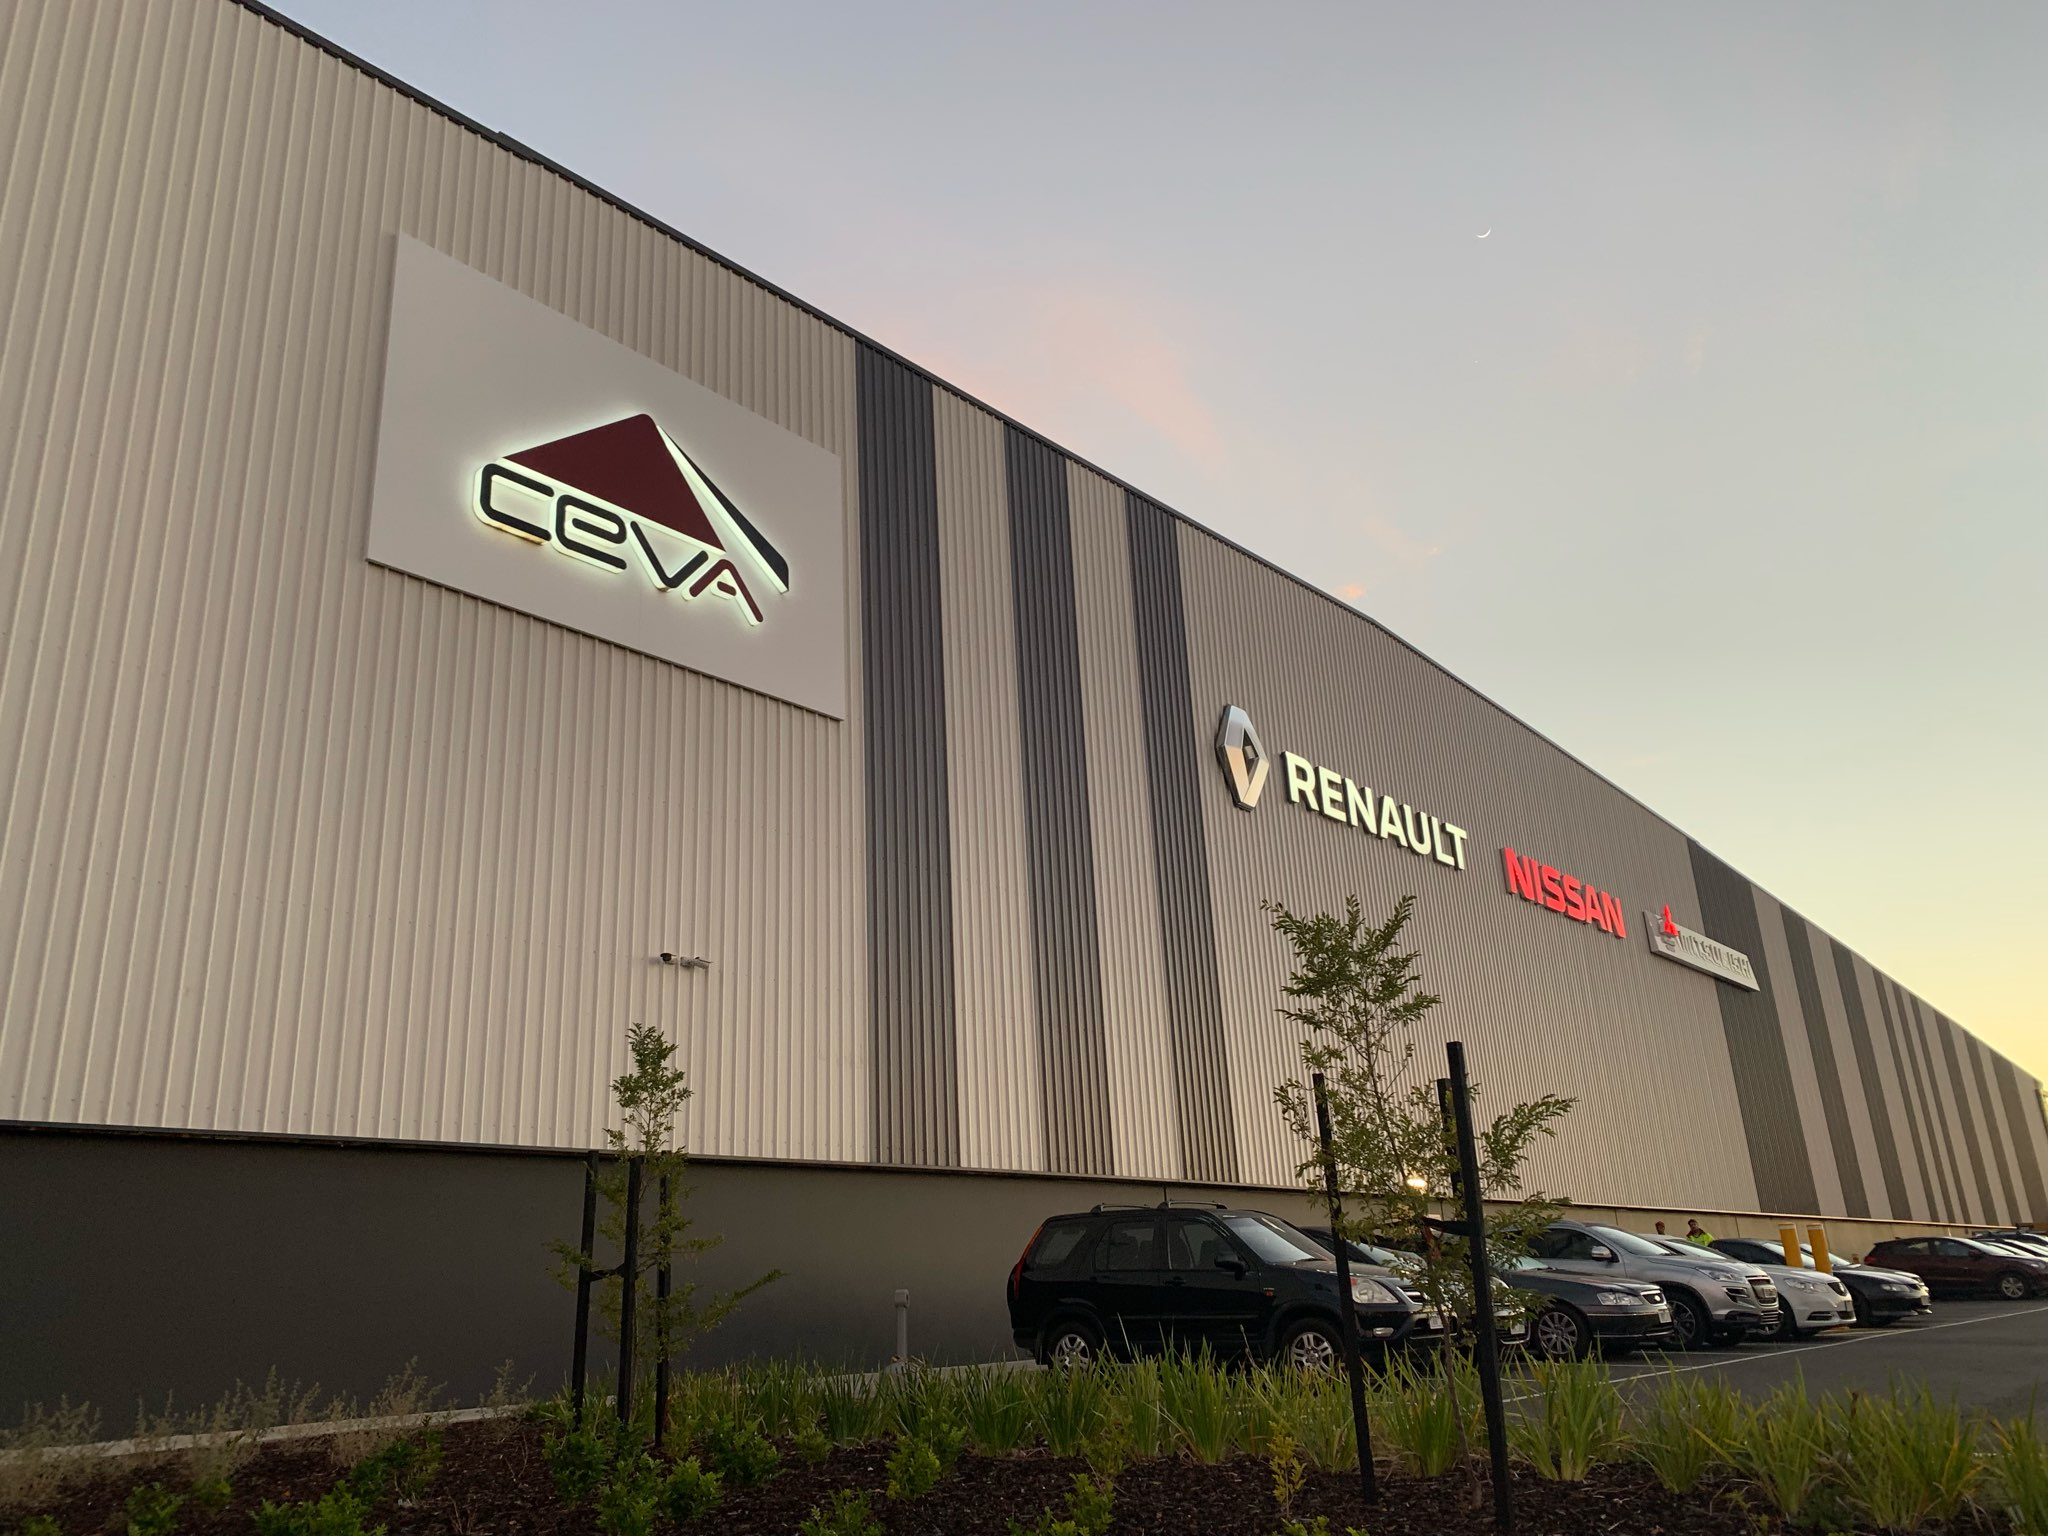 CEVA Property sign warehouse